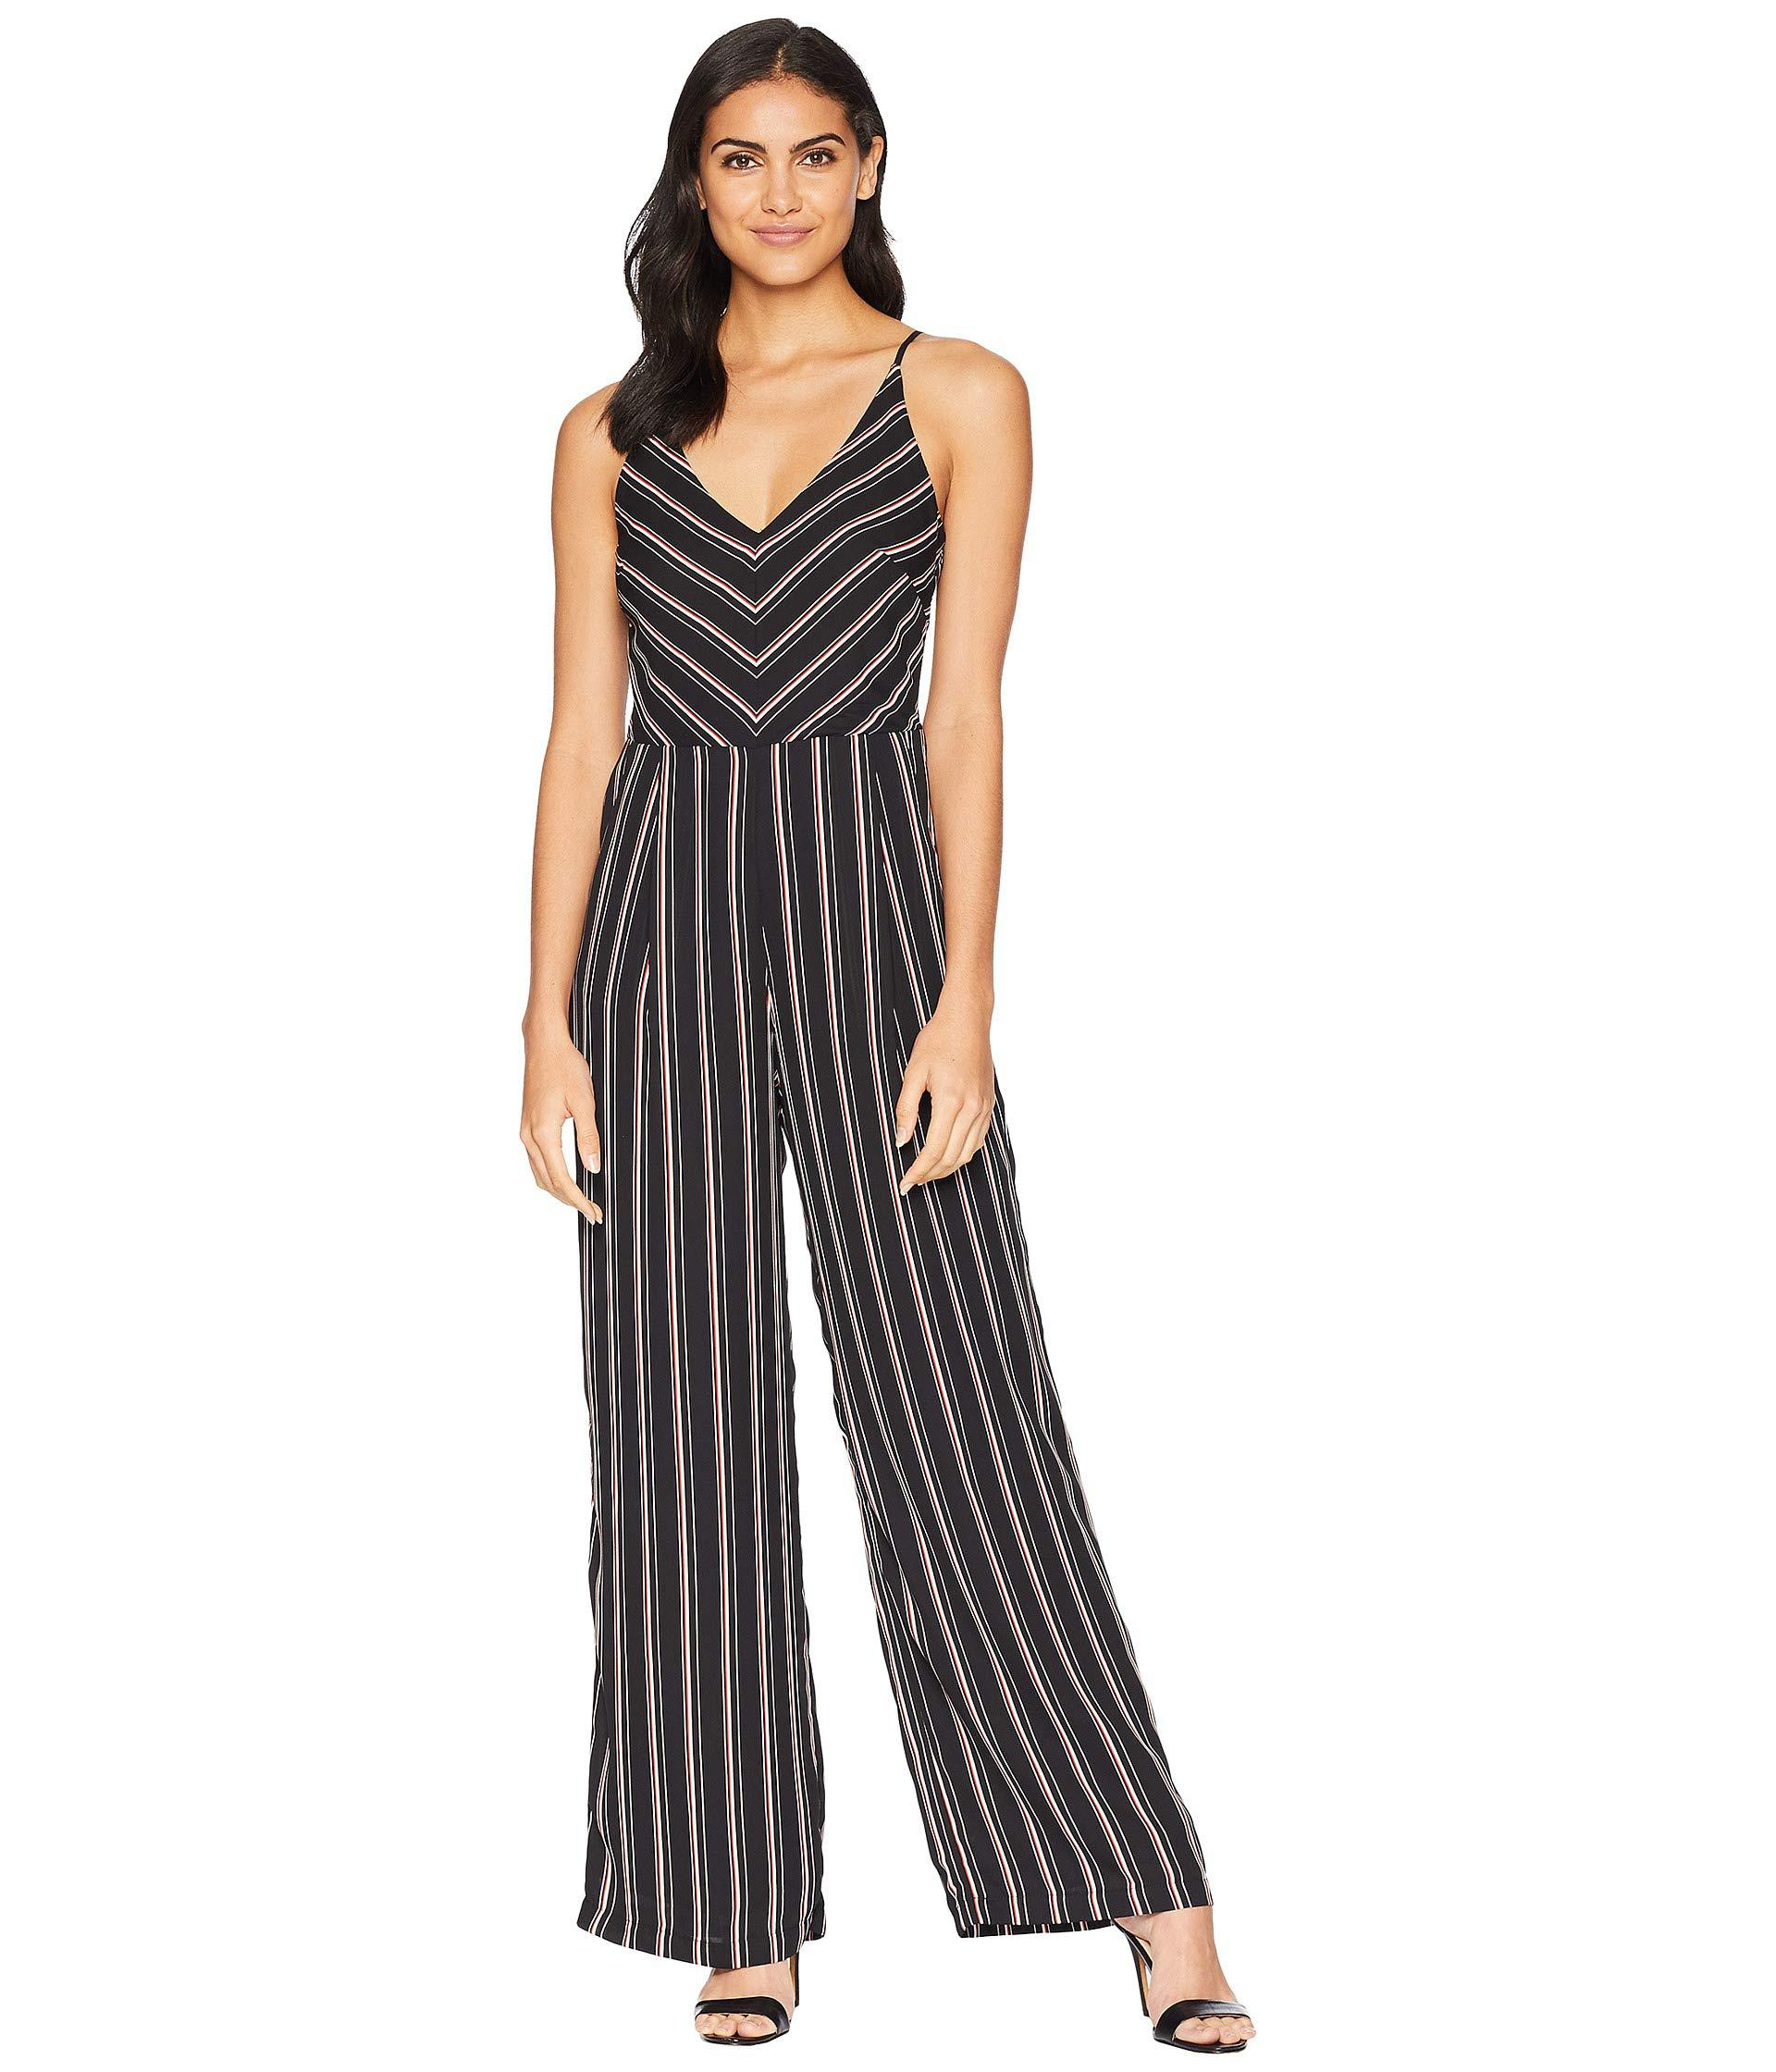 941f636ff76 Lyst - Adelyn Rae Kipling Woven Striped Jumpsuit in Black - Save 42%